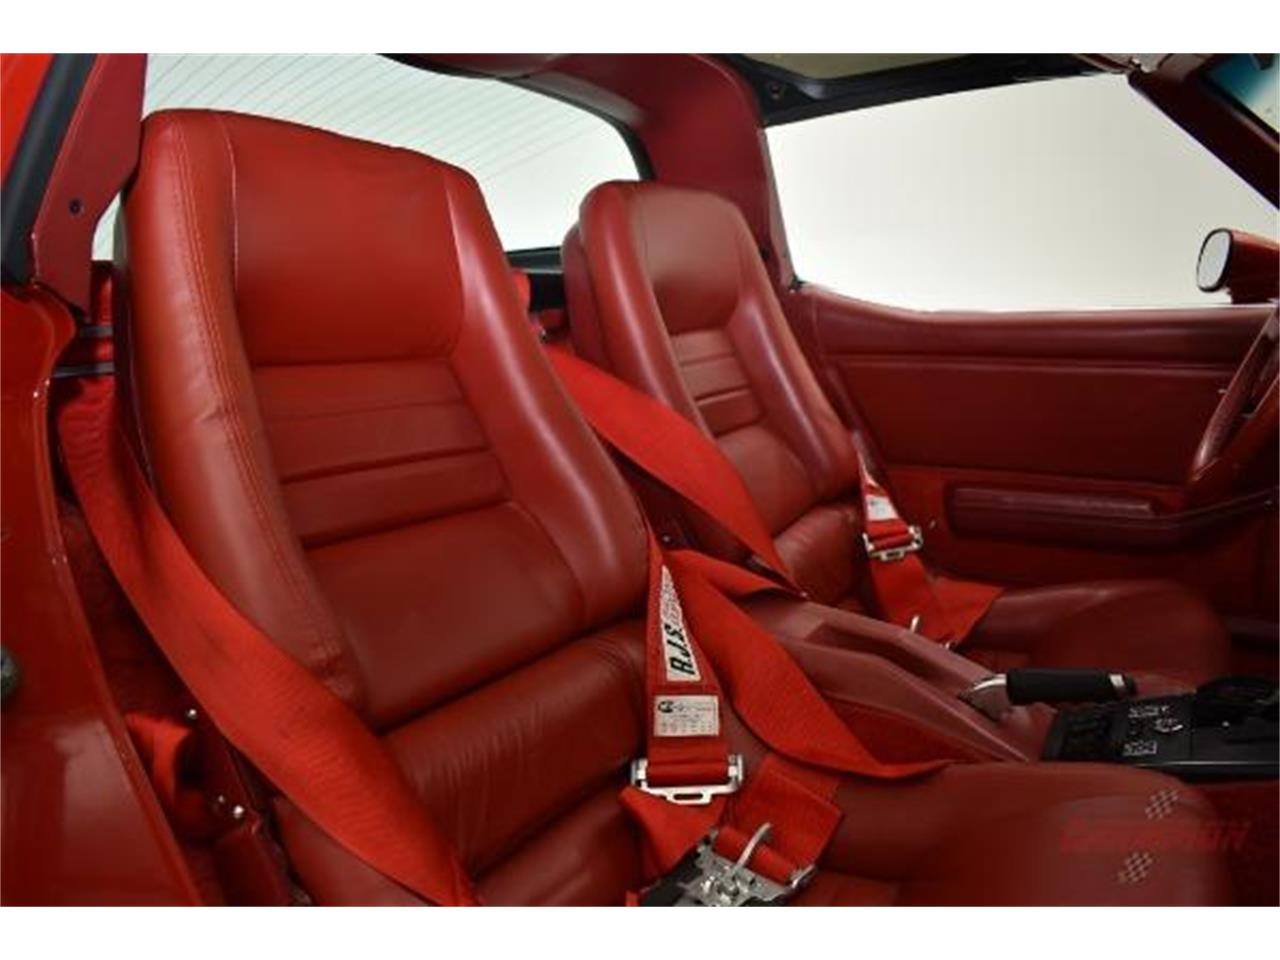 1982 Chevrolet Corvette for sale in Syosset, NY – photo 19